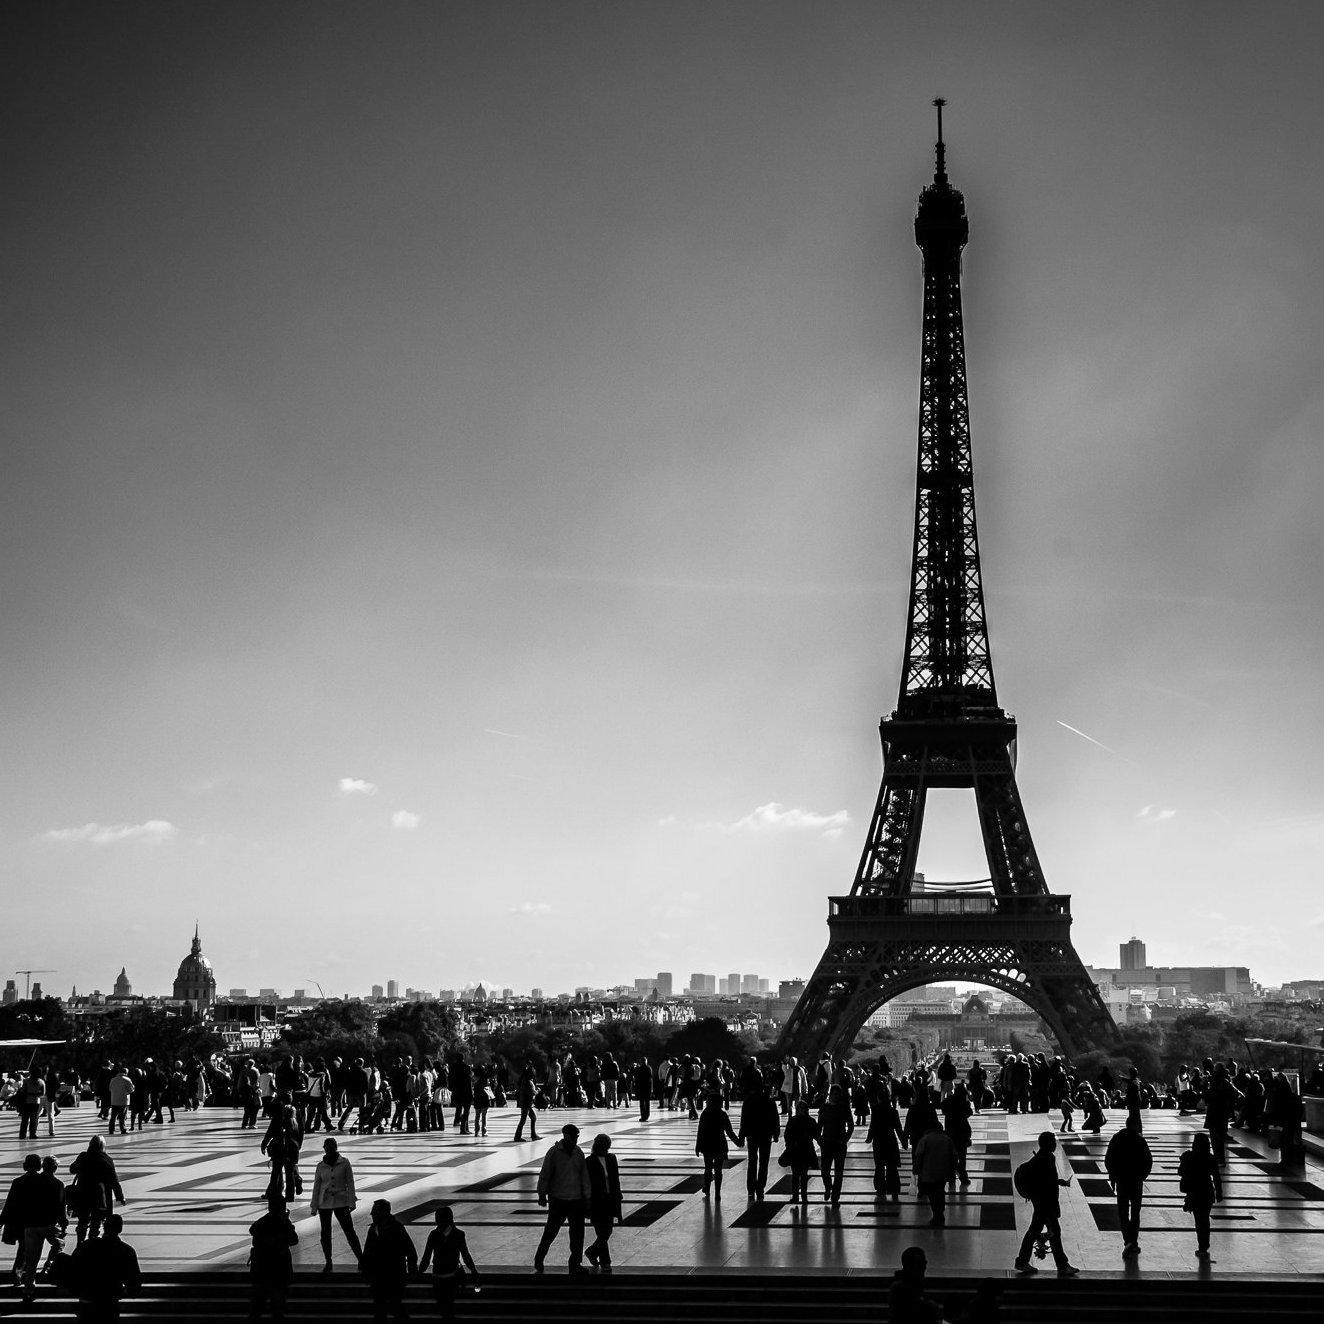 Photograph Paris by Arild Aarnes on 500px